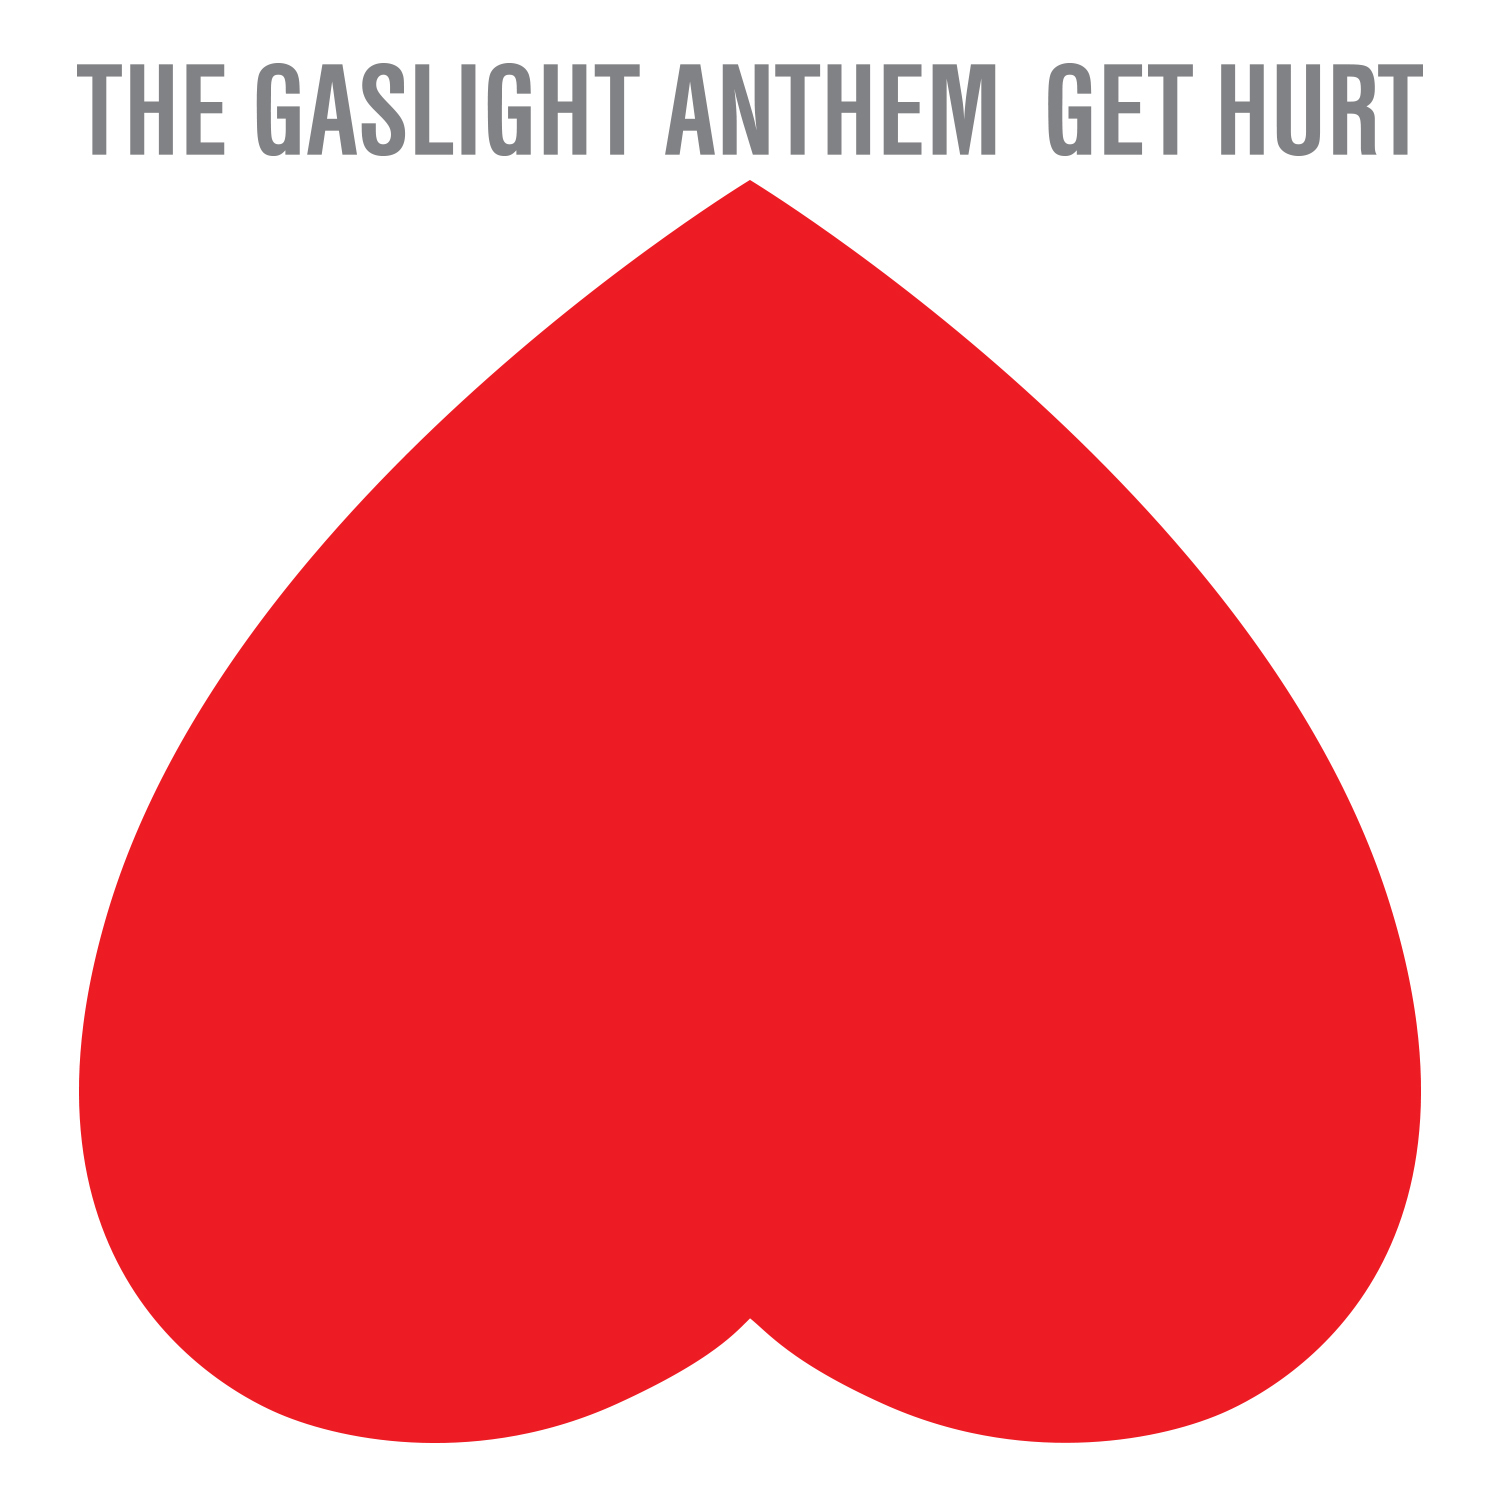 new music mondays: the gaslight anthem edition;